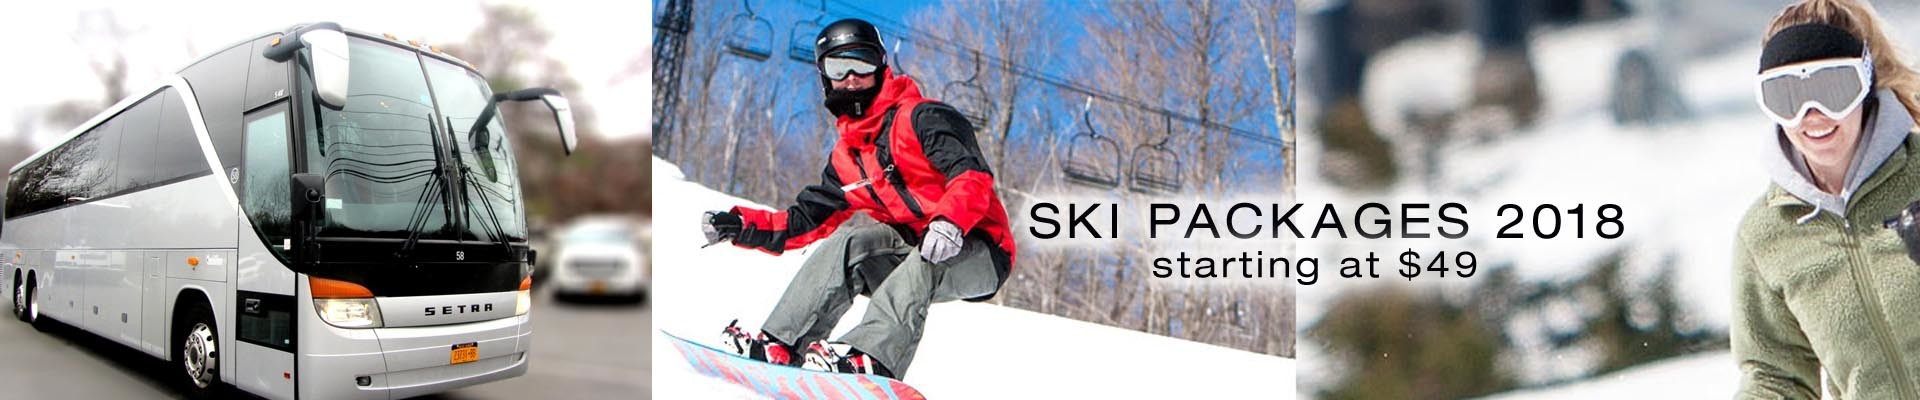 New York Ski Packages